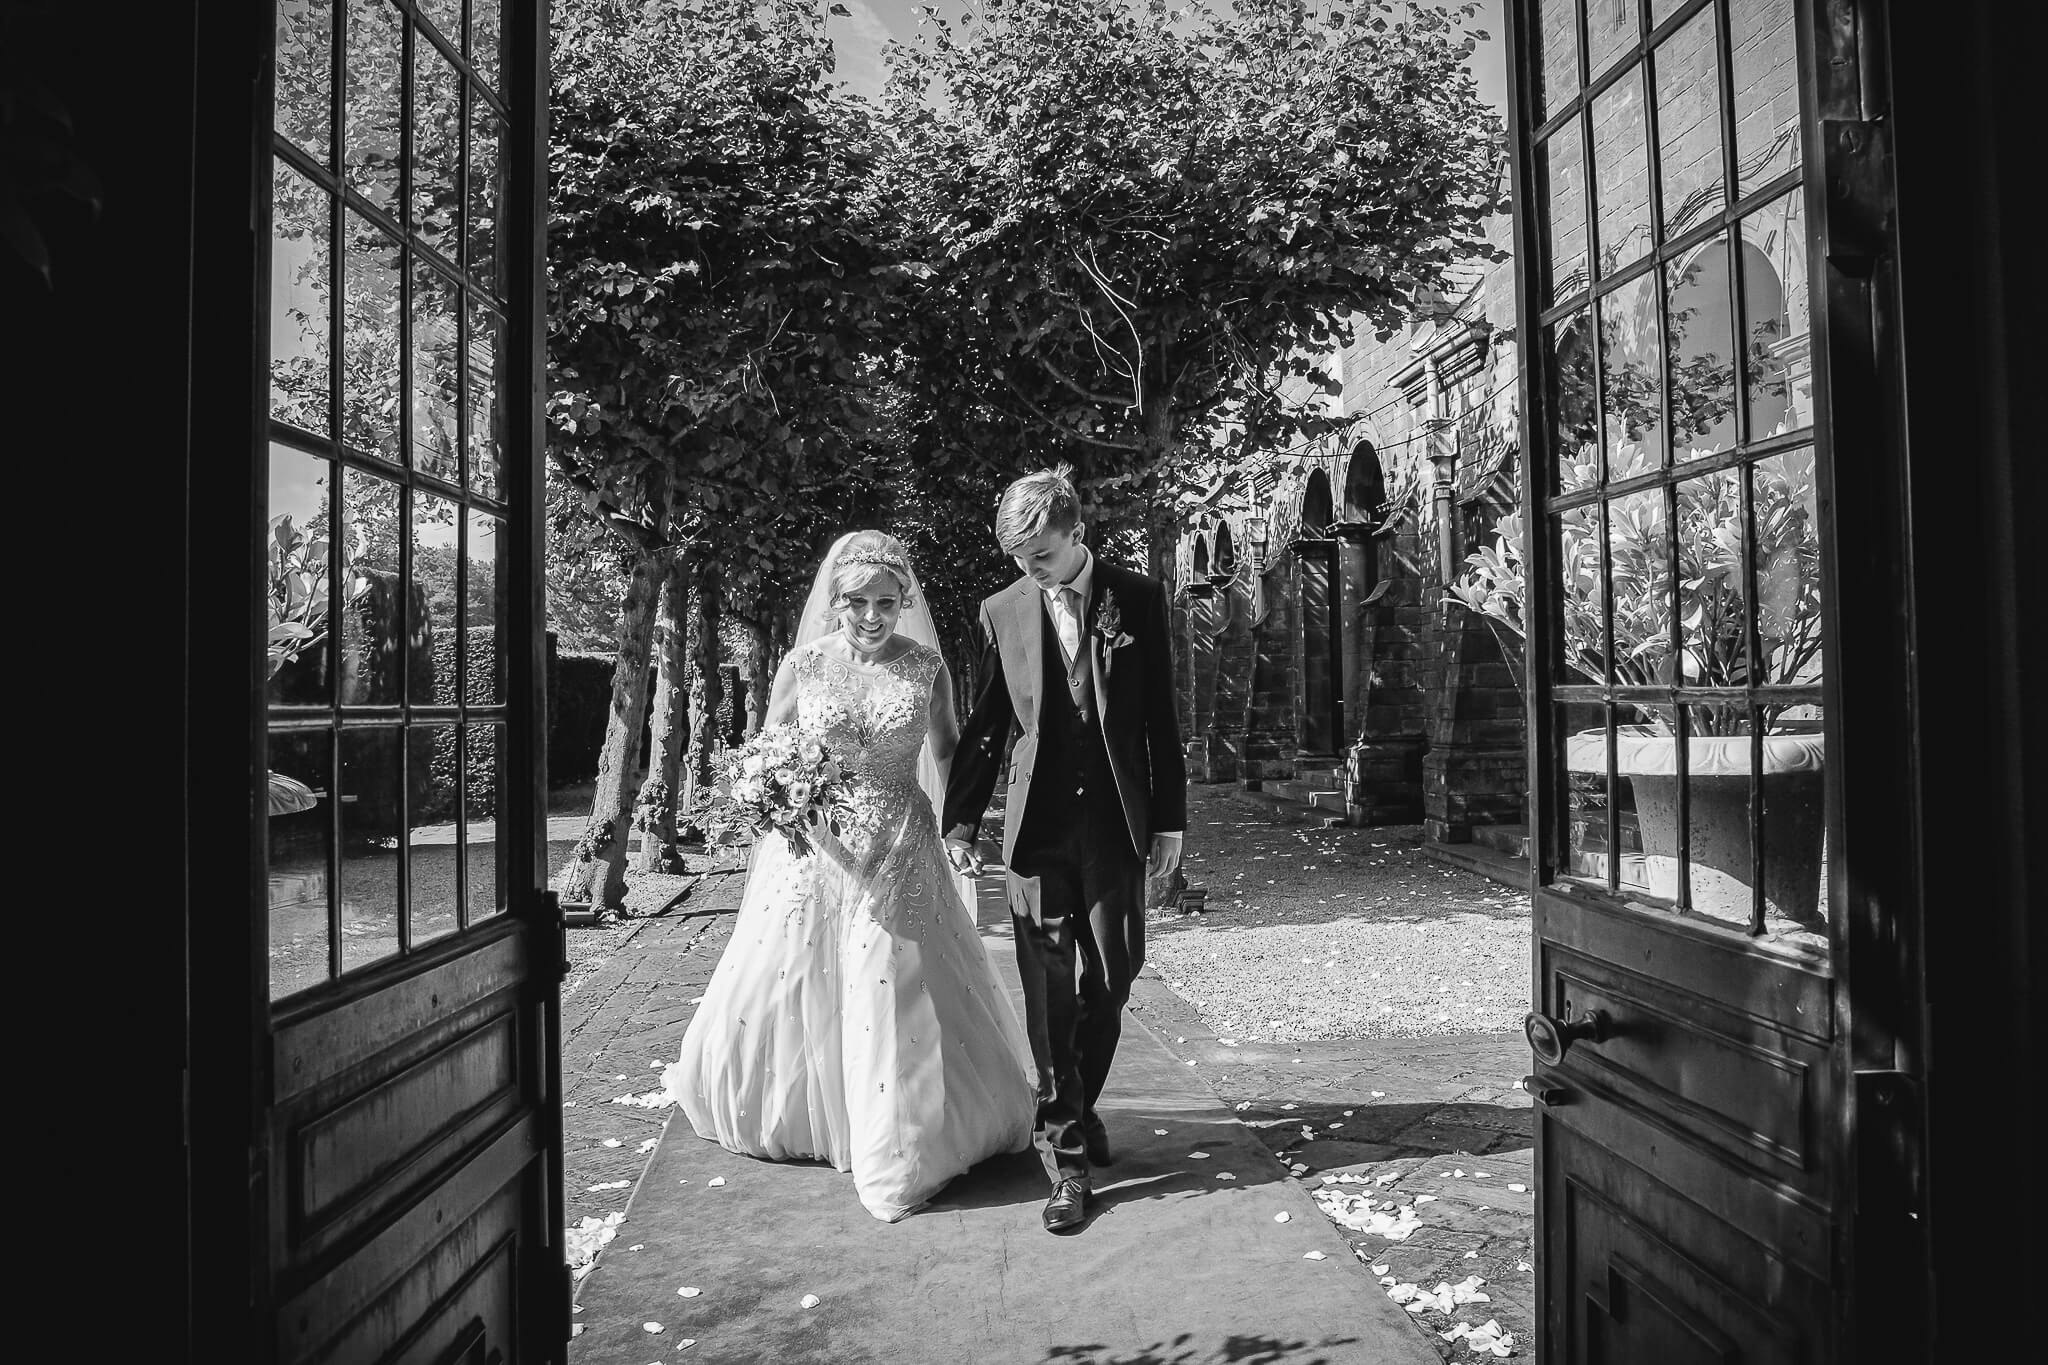 best-wedding-photographers-uk-europe-stanbury-photography-053